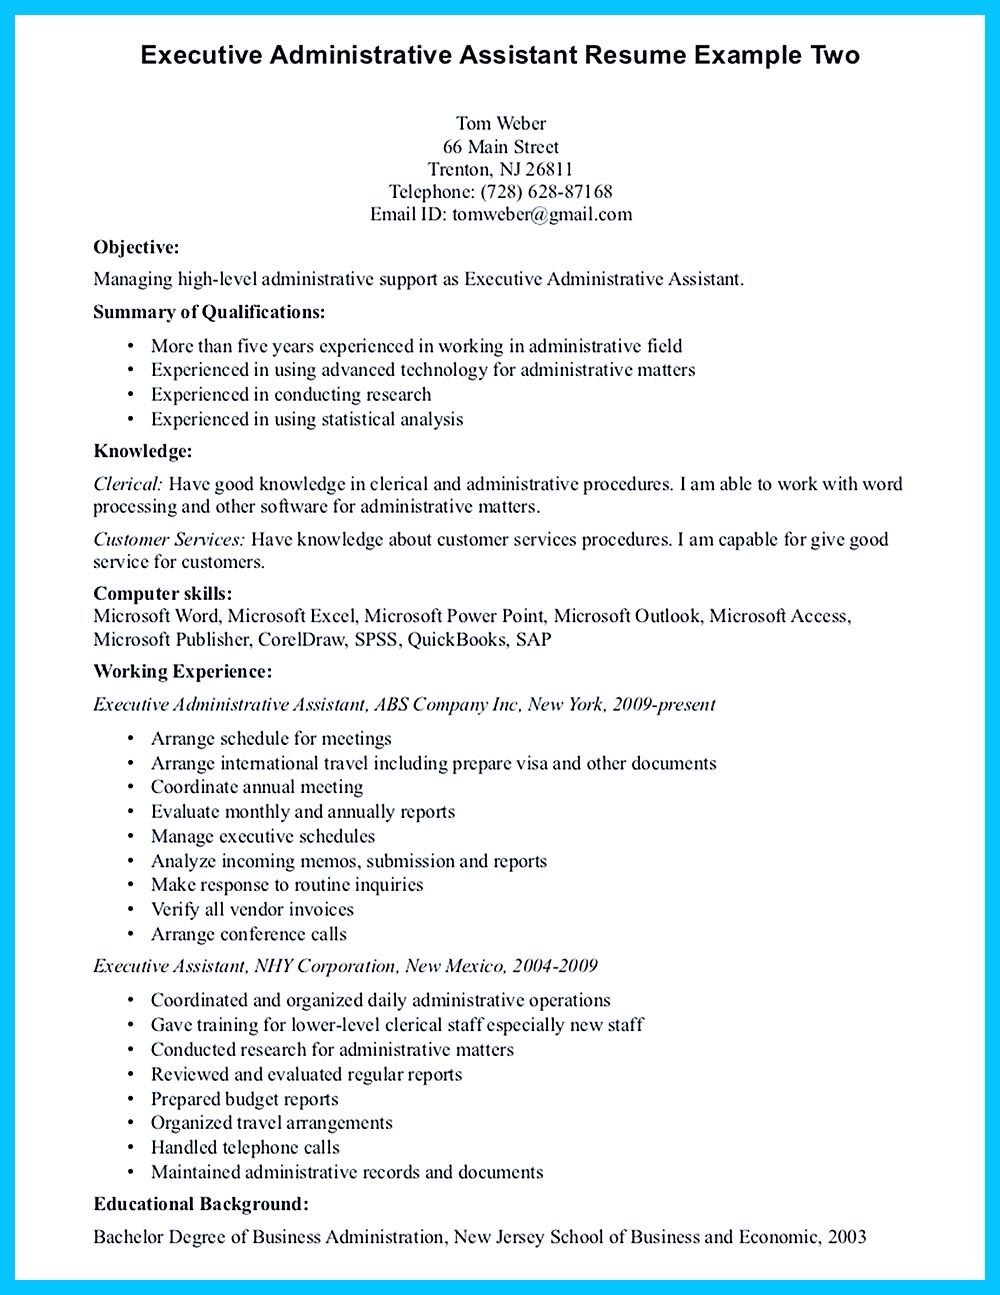 Administrative Assistant Job Description Resume In Writing Entry Level Administrative Assistant Resume You Need